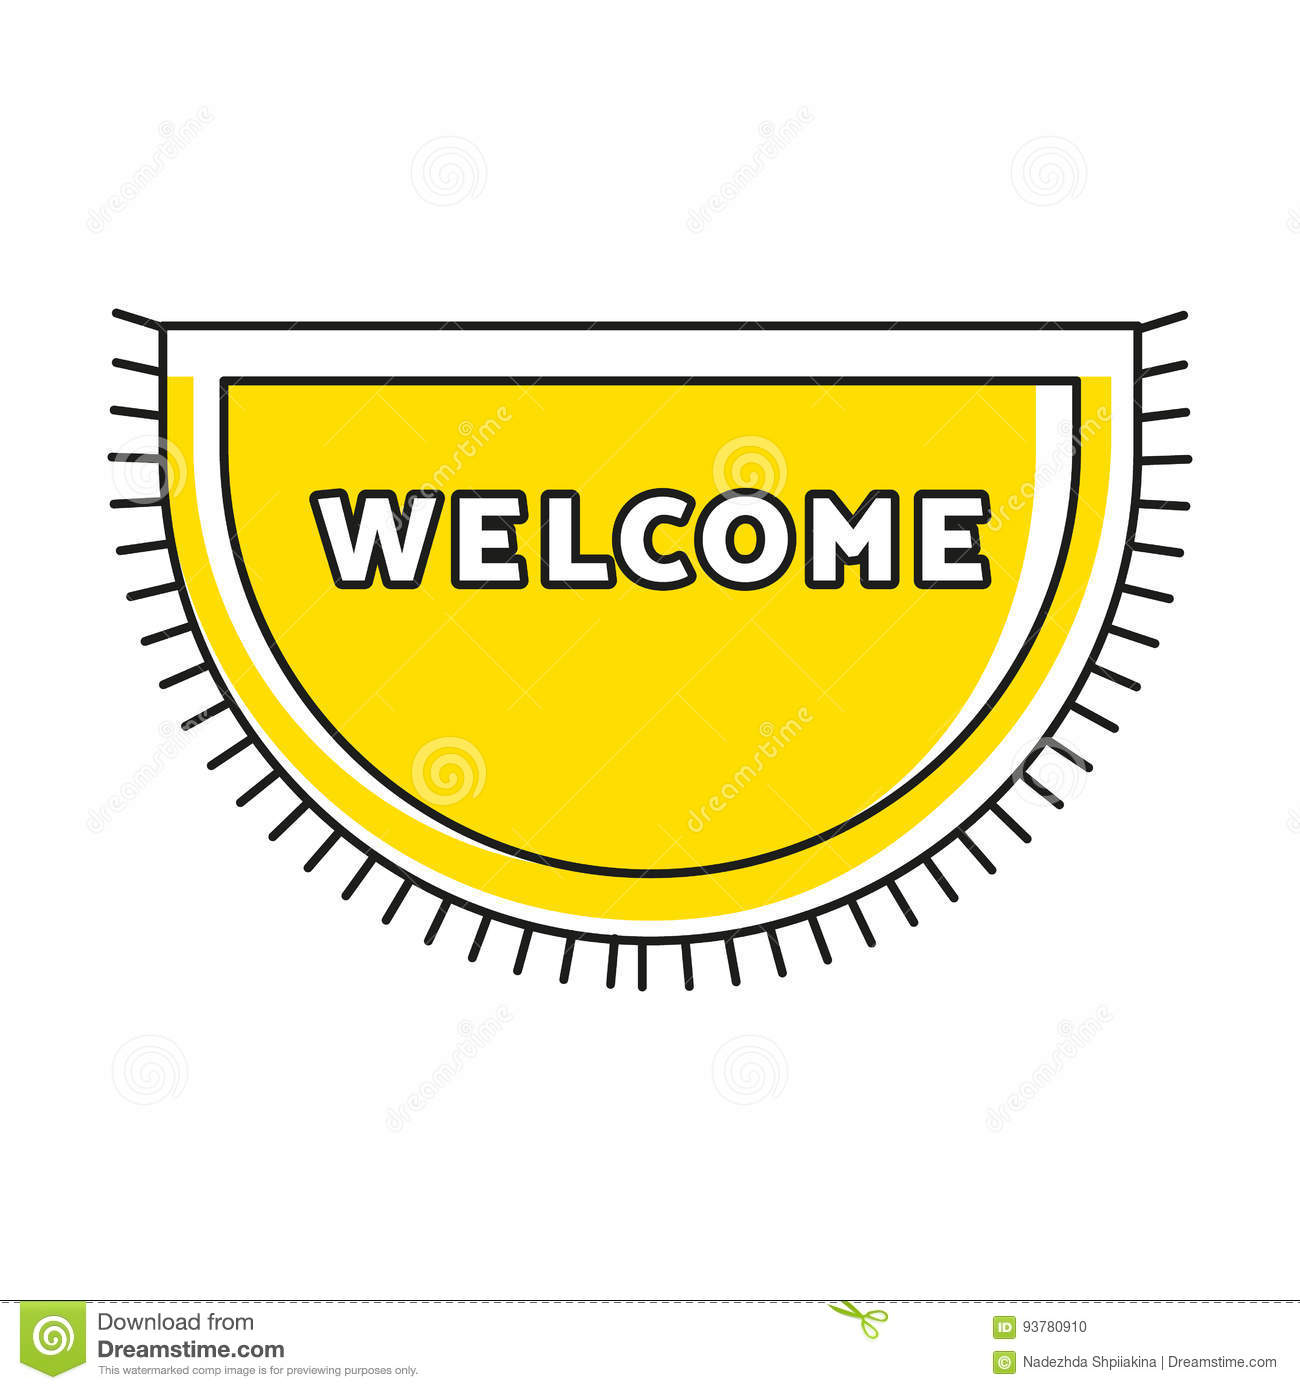 Yellow doormat with fringe and text welcome cute home symbol yellow doormat with fringe and text welcome cute home symbol simple hipster design household interior item buycottarizona Gallery